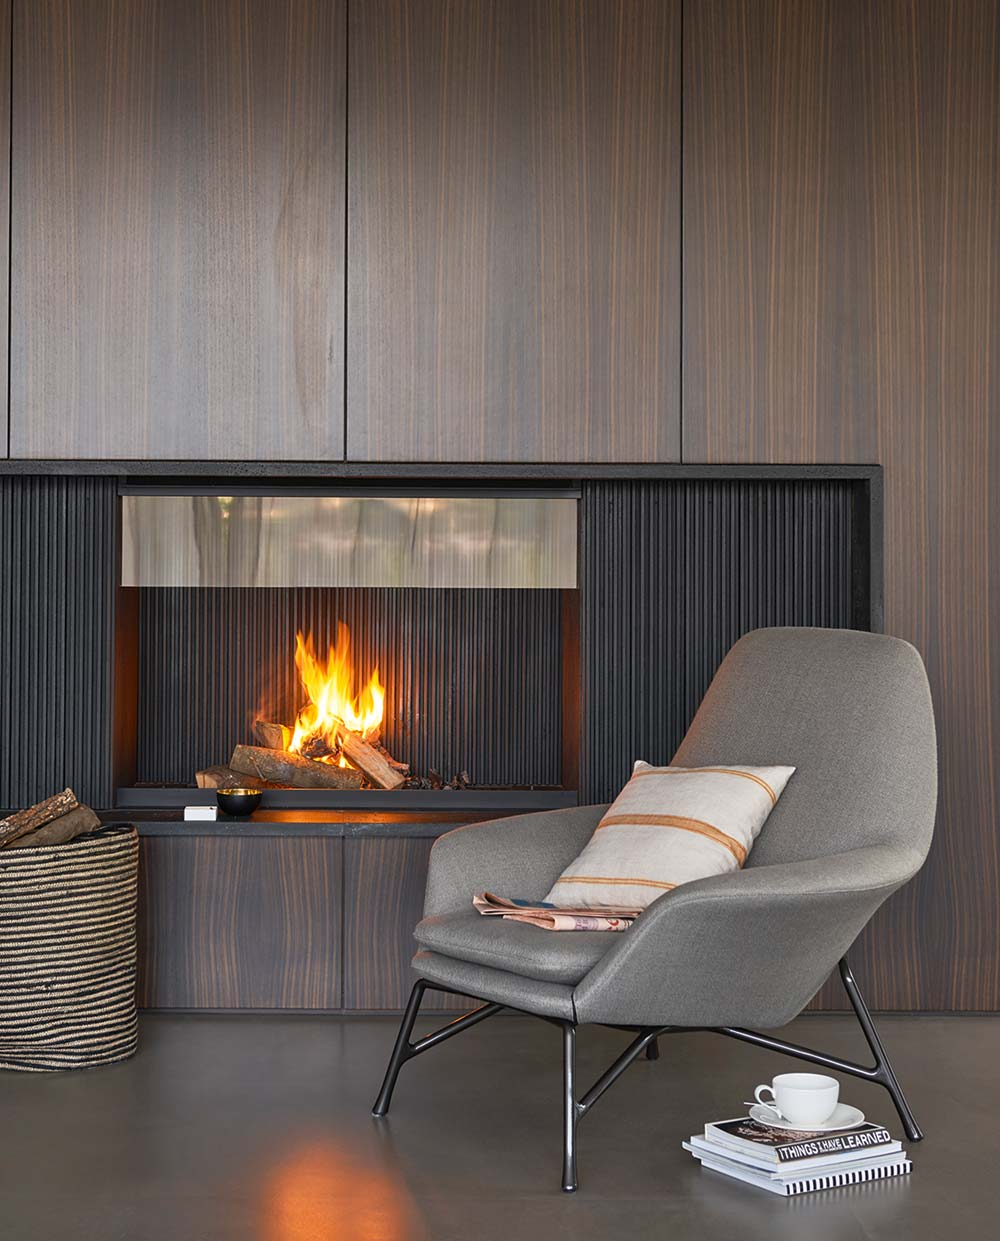 luxury home fireplace design - Valles House